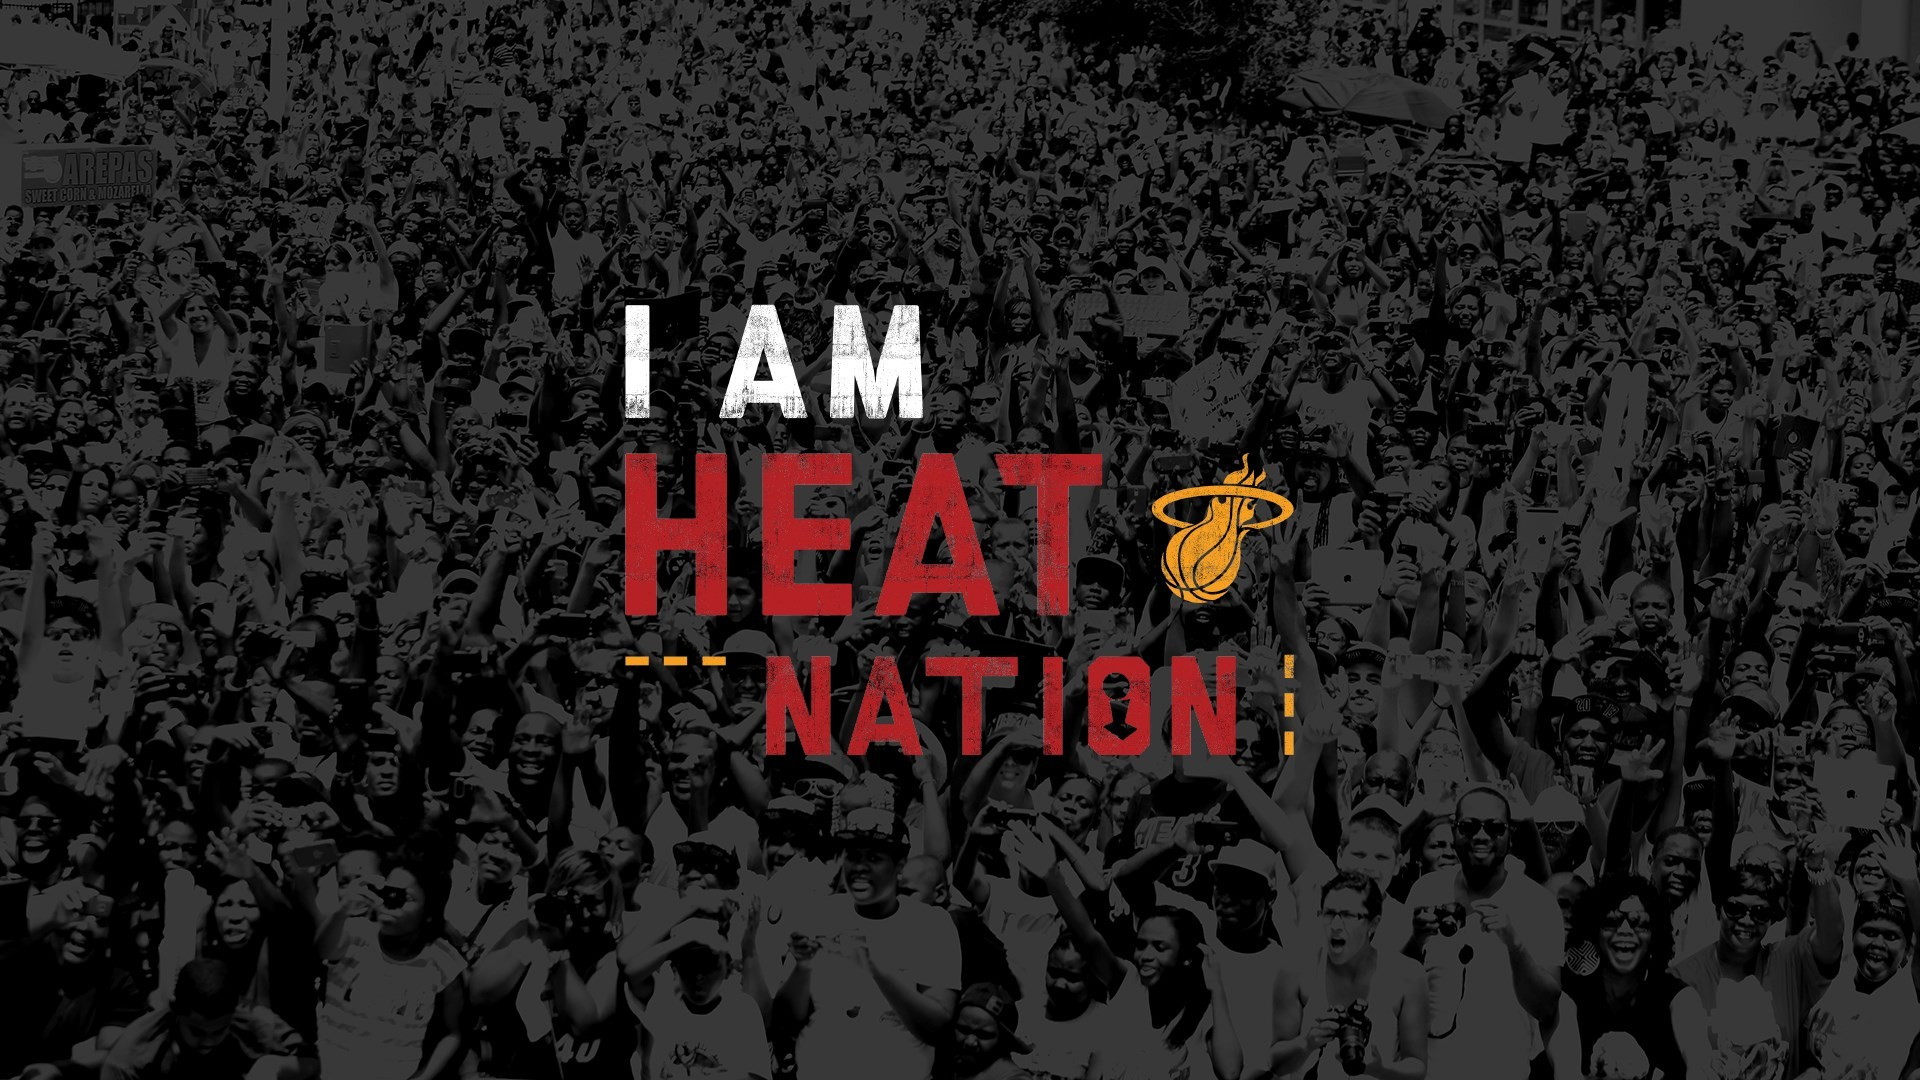 Miami heat background wallpaper 76 images - Miami heat wallpaper android download ...